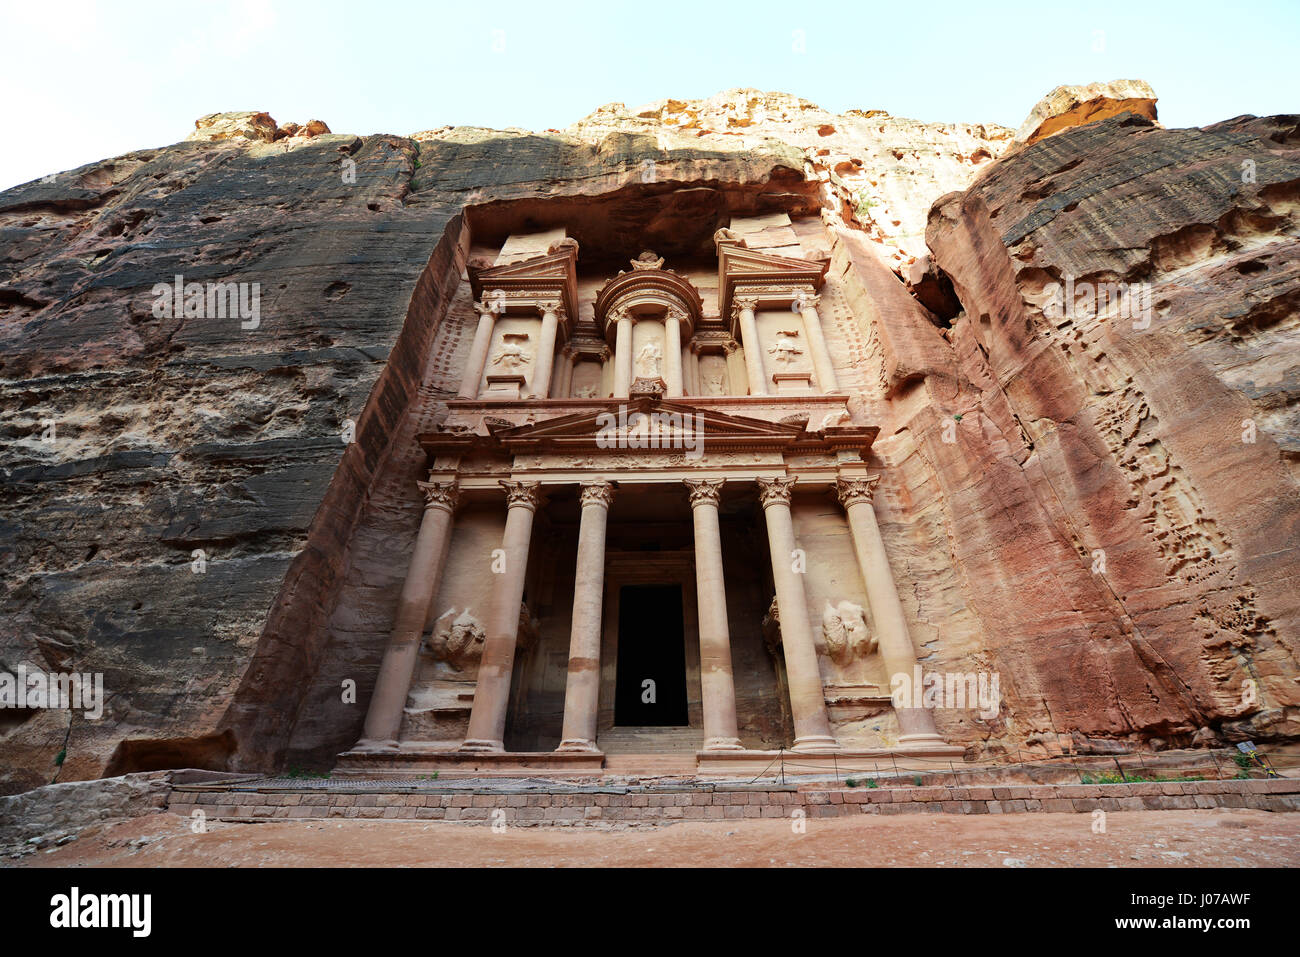 The Treasury (El Khazneh) in the ancient Nabatean city of  Petra in Jordan. - Stock Image